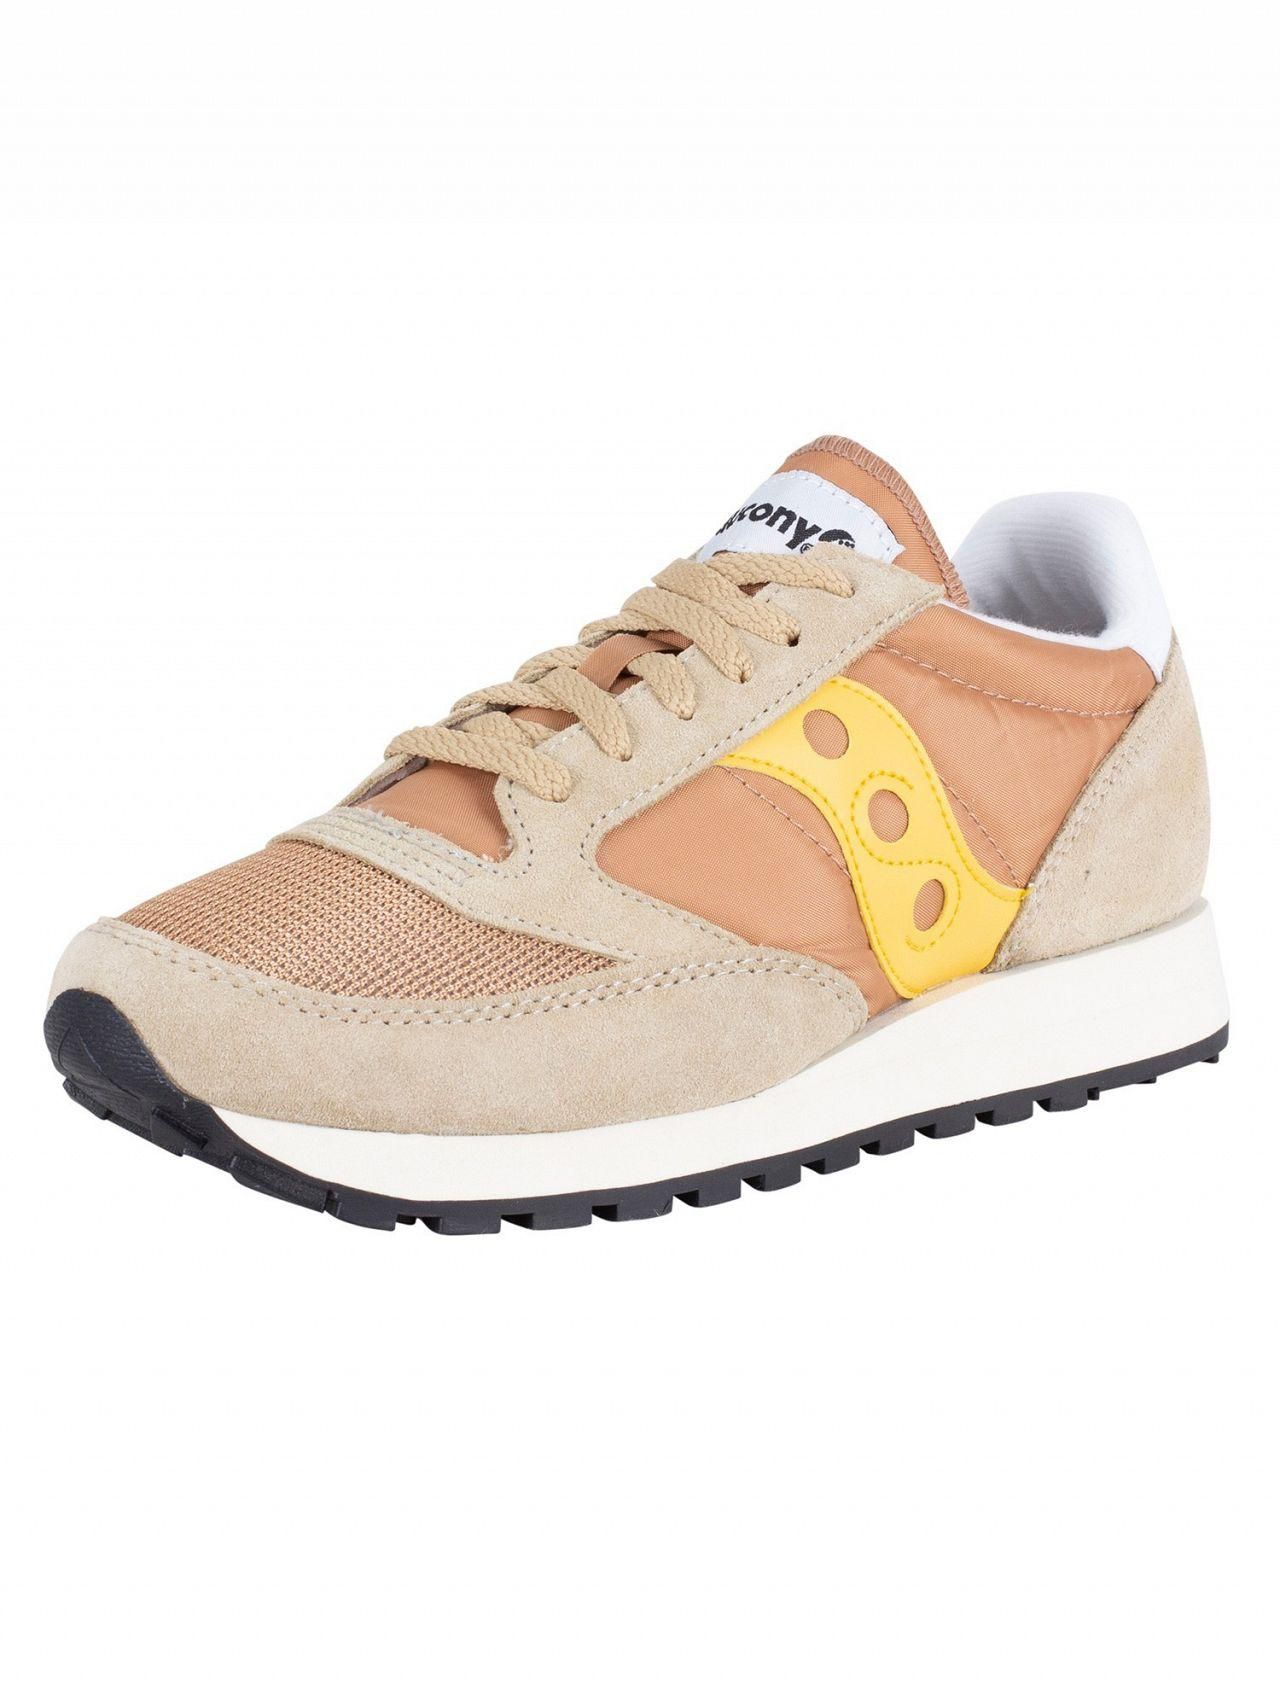 e127fe5bcaf9 Saucony Tan yellow Jazz Original Vintage Trainers for Men - Lyst